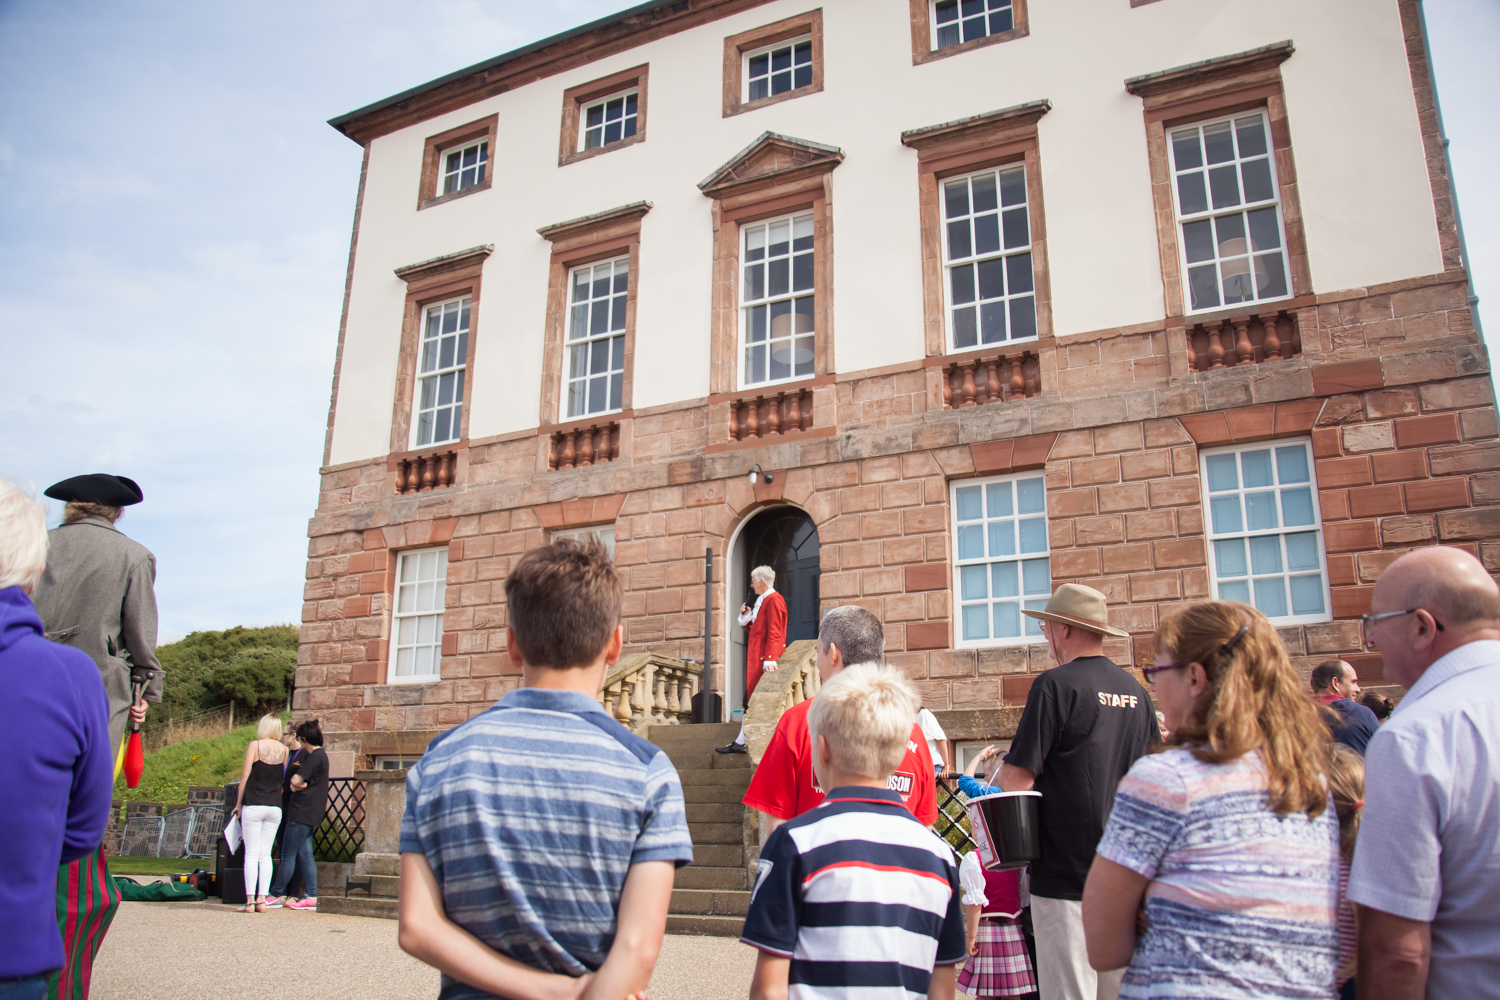 PICTORIAL_BERWICK_eyemouth-gunsgreen-extravaganza-photography-entertainment-party-event-photographer-harbour-gary-dunn-dancers-stilts-performances-speeches-day-out-summer-4532.jpg